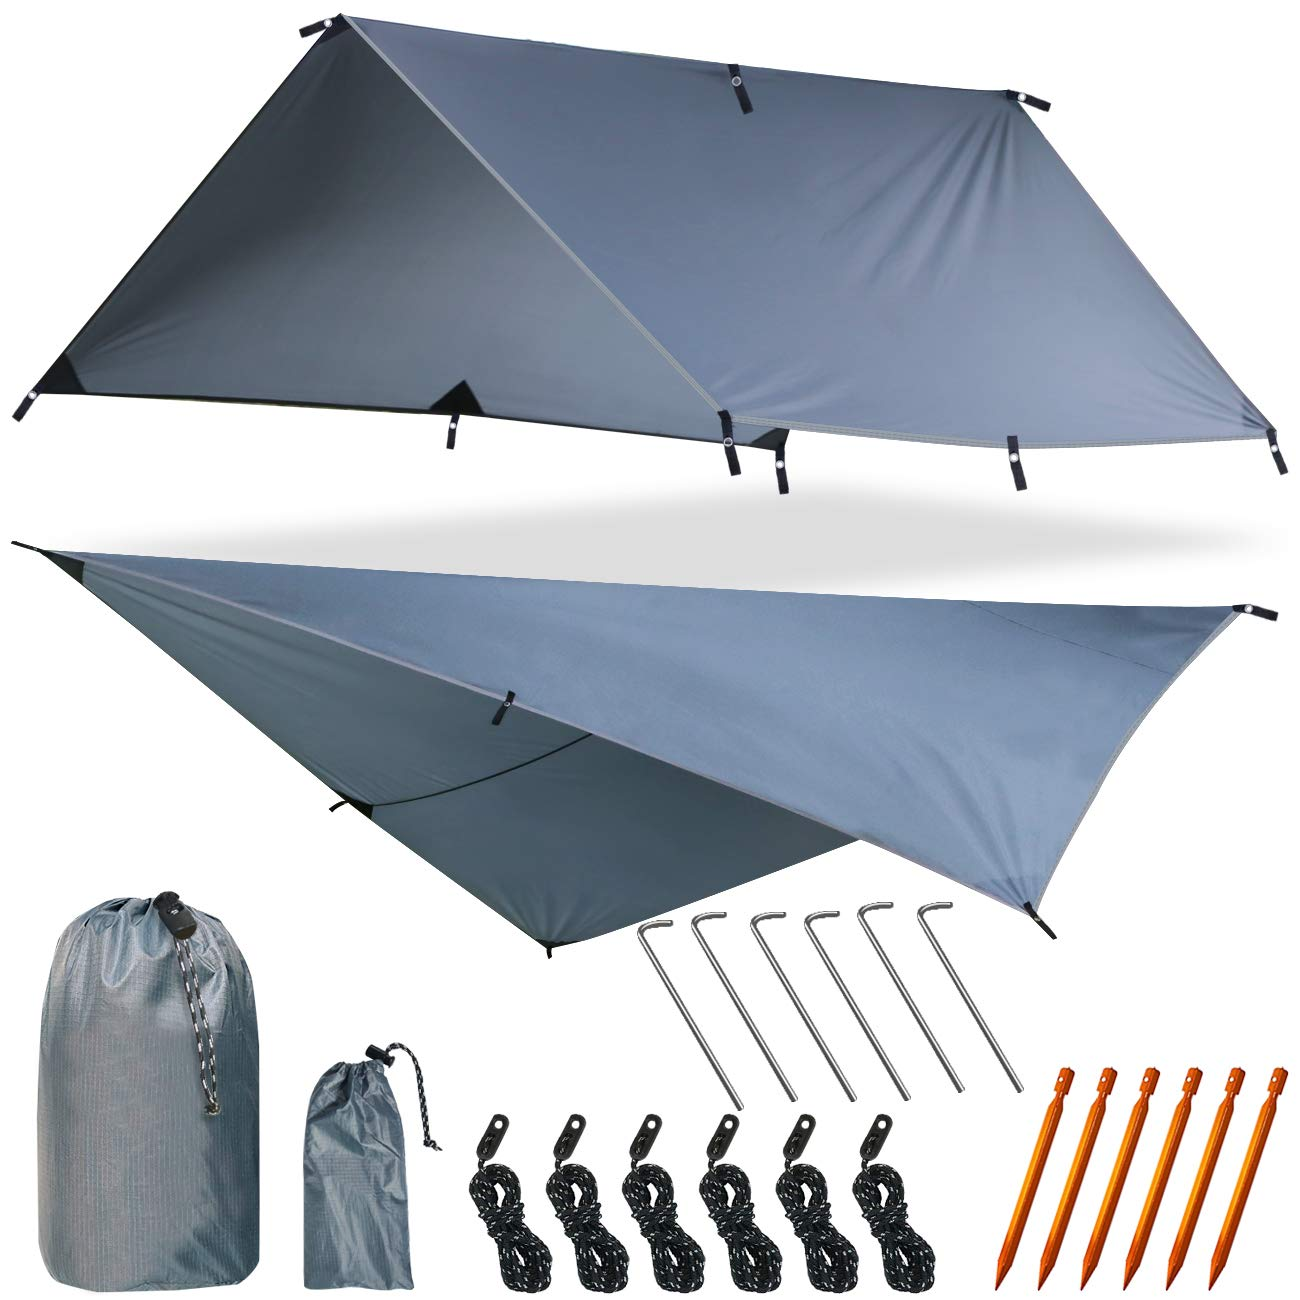 Yztree Fly Tent Tarp Hammock Fly Tent Lightweight Backpacking Camping Shelter 10.5 x10ft Include More Accessories for Various Weather Conditions Fly Tent Tarp(Gray) by Yztree